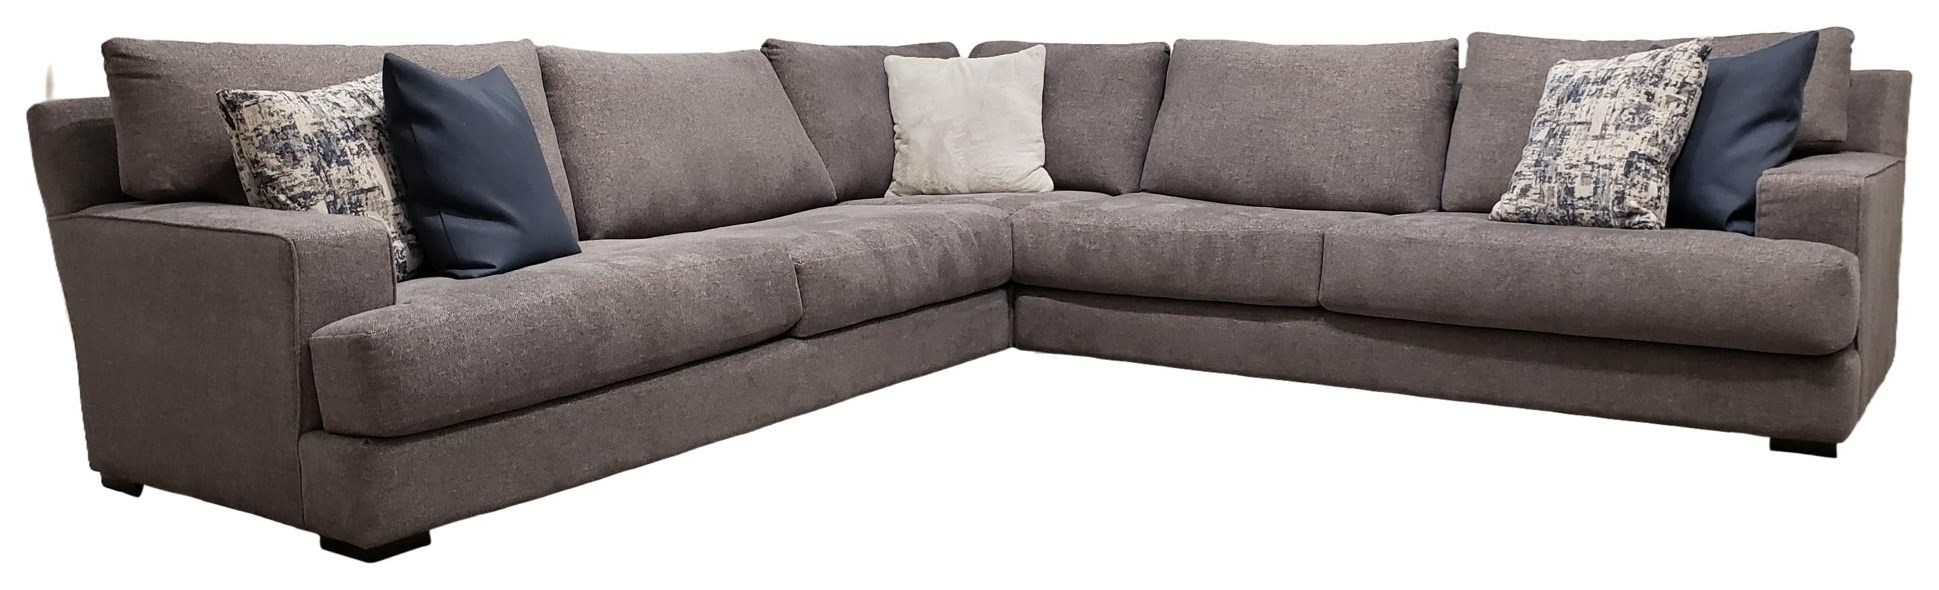 2702 2702 Sectional by Decor-Rest at Upper Room Home Furnishings